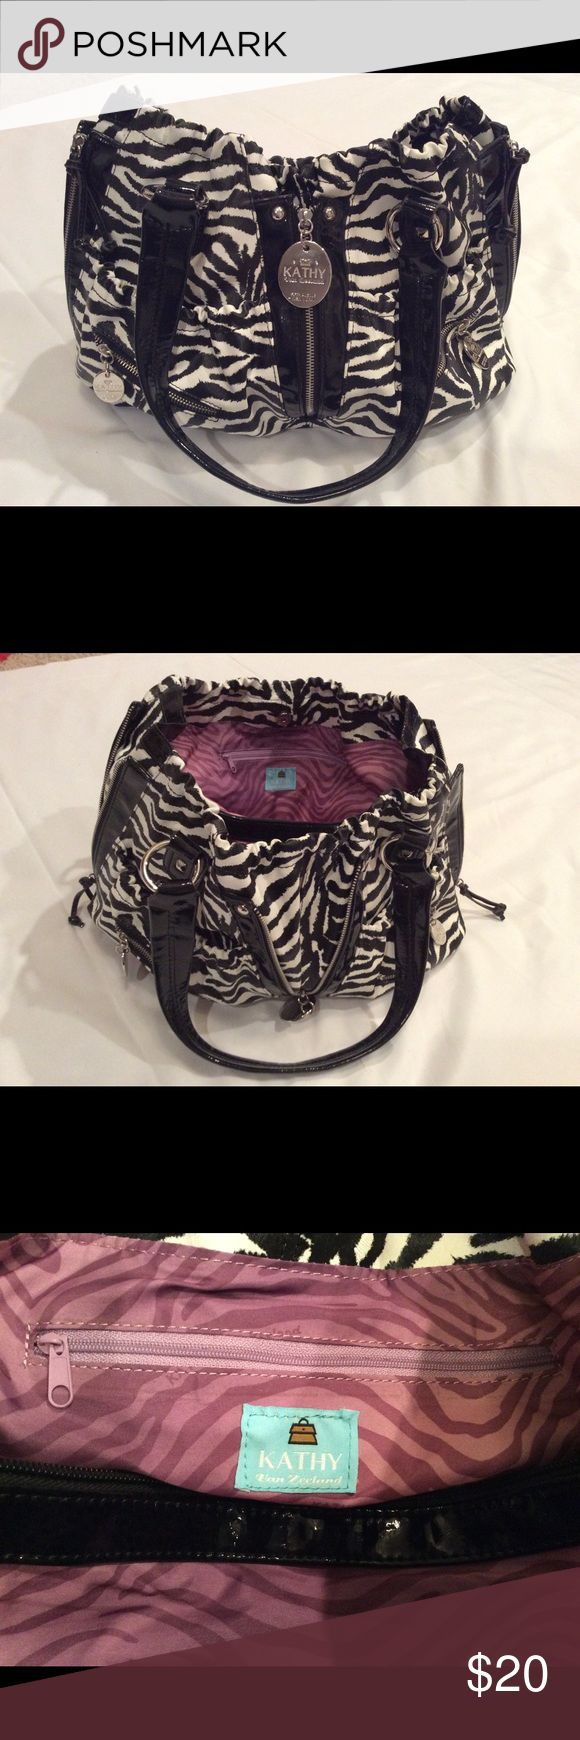 Kathy Van Zeeland purse, Zebra print. Kathy Van Zeeland Zebra print purse, size approx. H: 12in. W: 16in. D: 6in., Has 2 zippers on sides & 1 in front, designed to expand purse size.  Used only twice, in barely used condition. Kathy Van Zeeland Bags Satchels